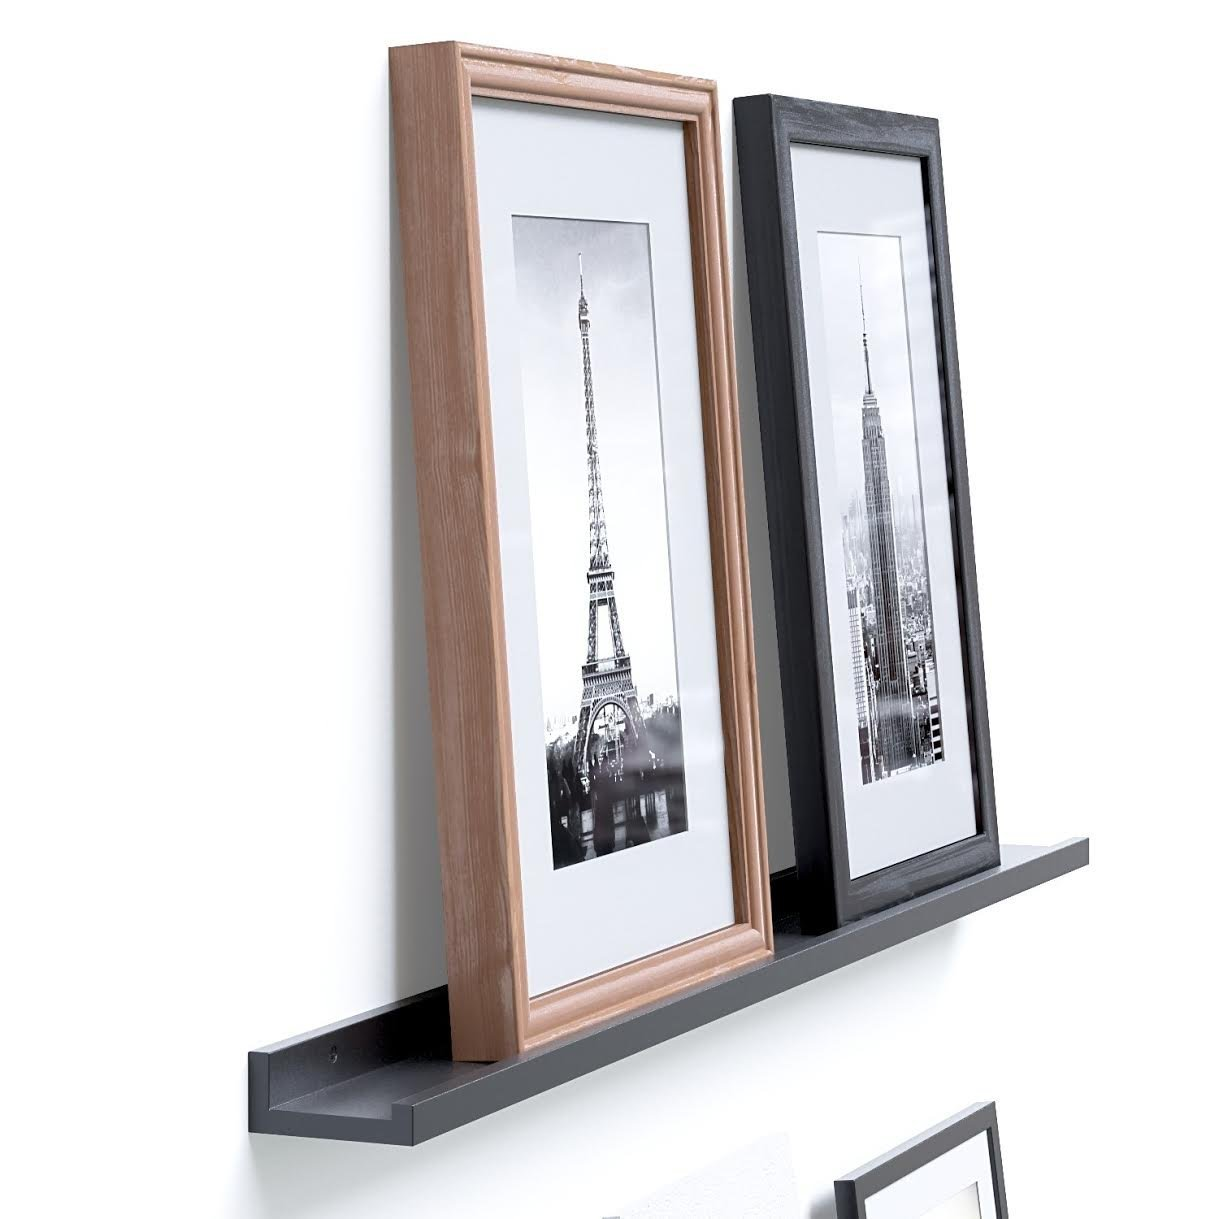 amazoncom modern design floating picture display ledge wall  - amazoncom modern design floating picture display ledge wall mountableshelf  inches long black home  kitchen